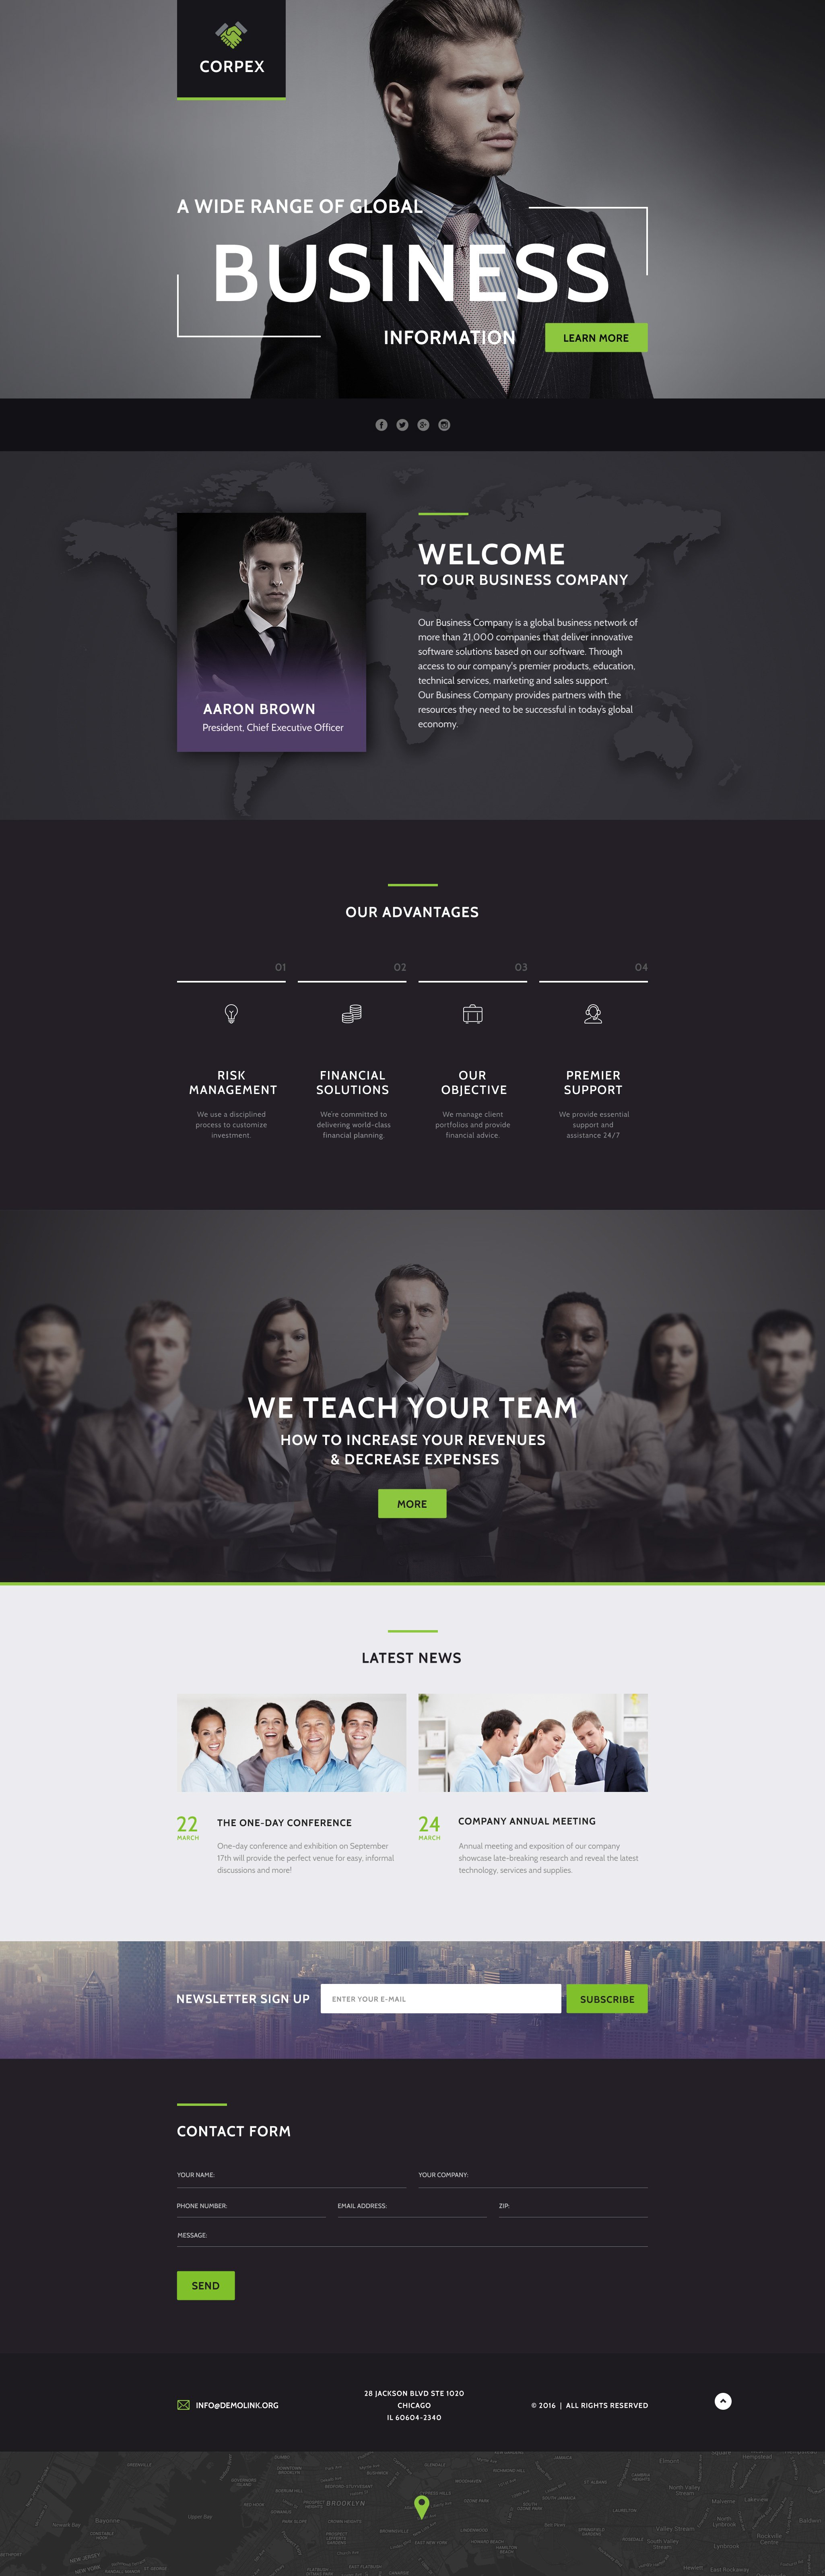 Business Responsive Landing Page Template #58438